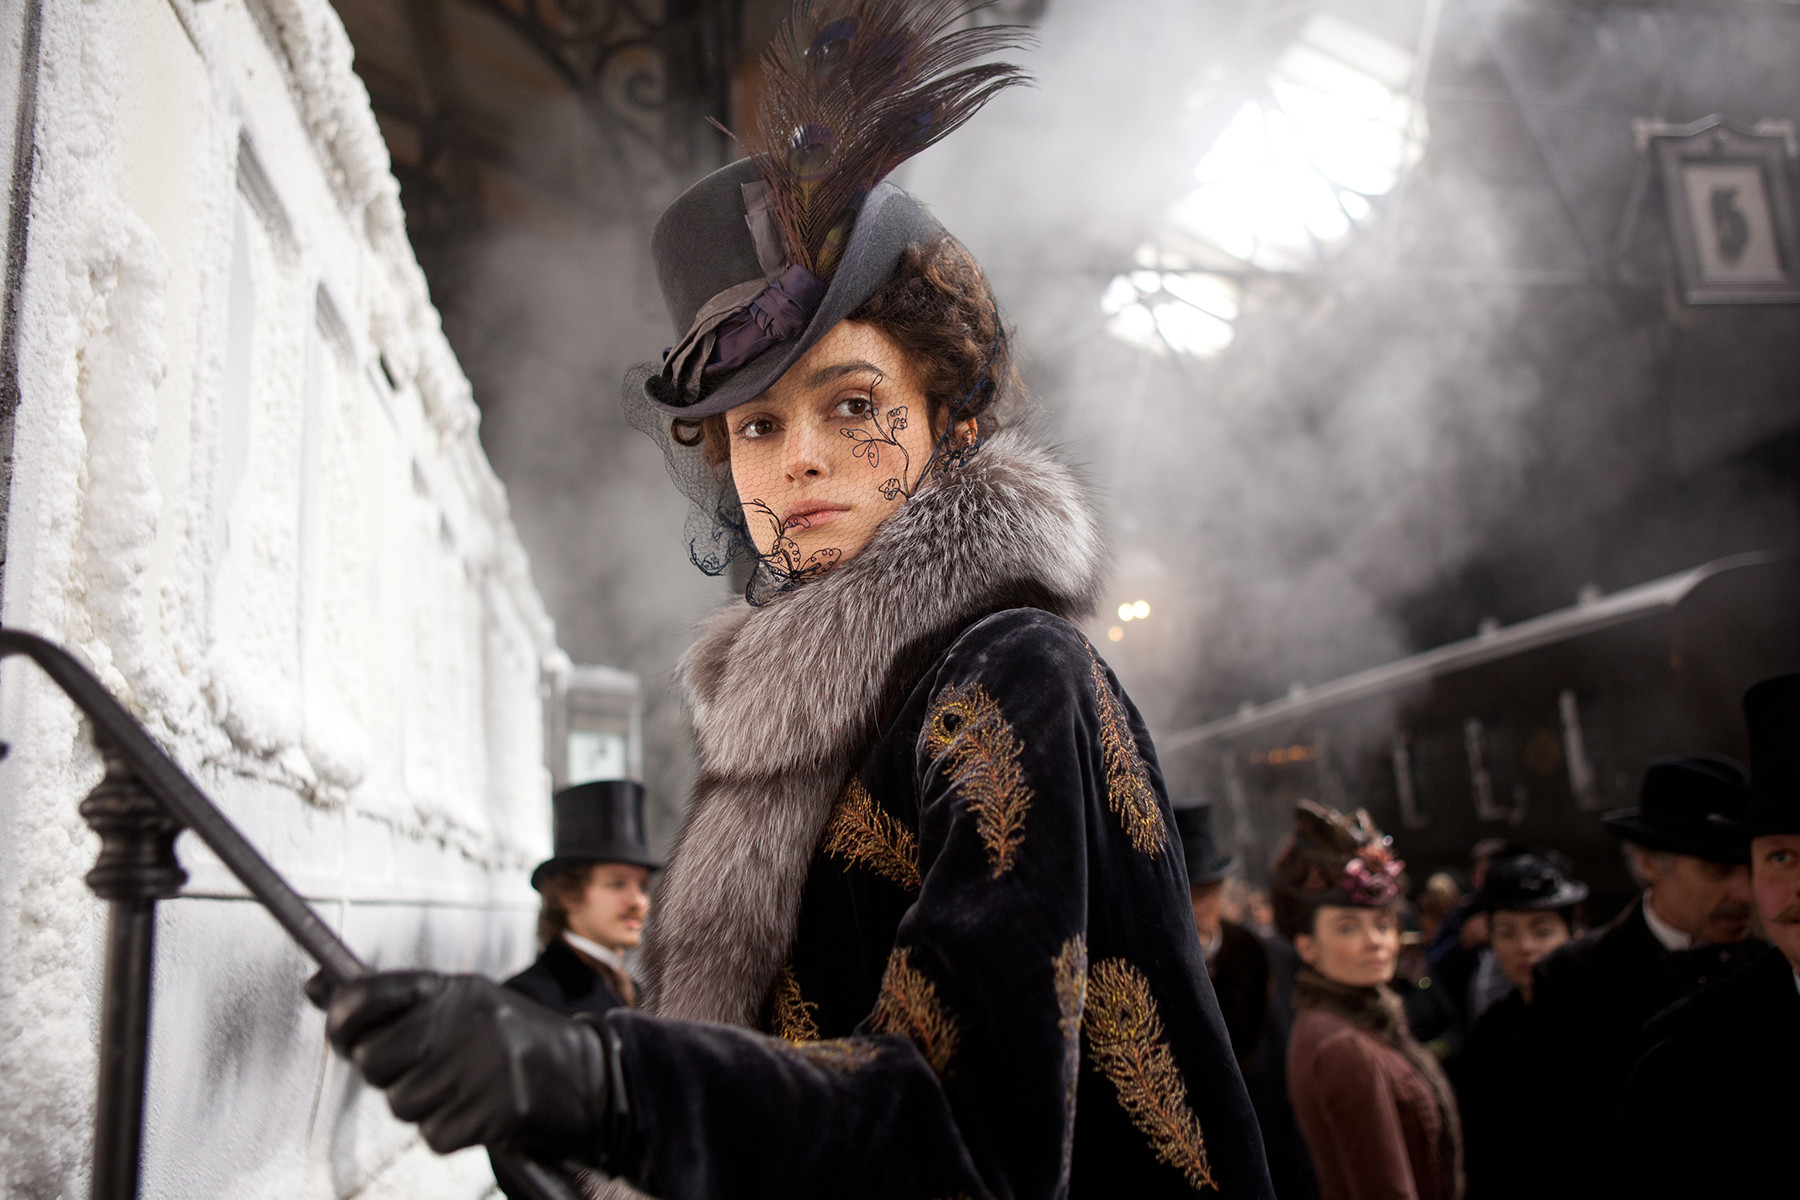 Perhaps Kira Knightley was a doubtful choice for the Karenina character yet Joe Wright's version attracted attention to Tolstoy's classic one more time.